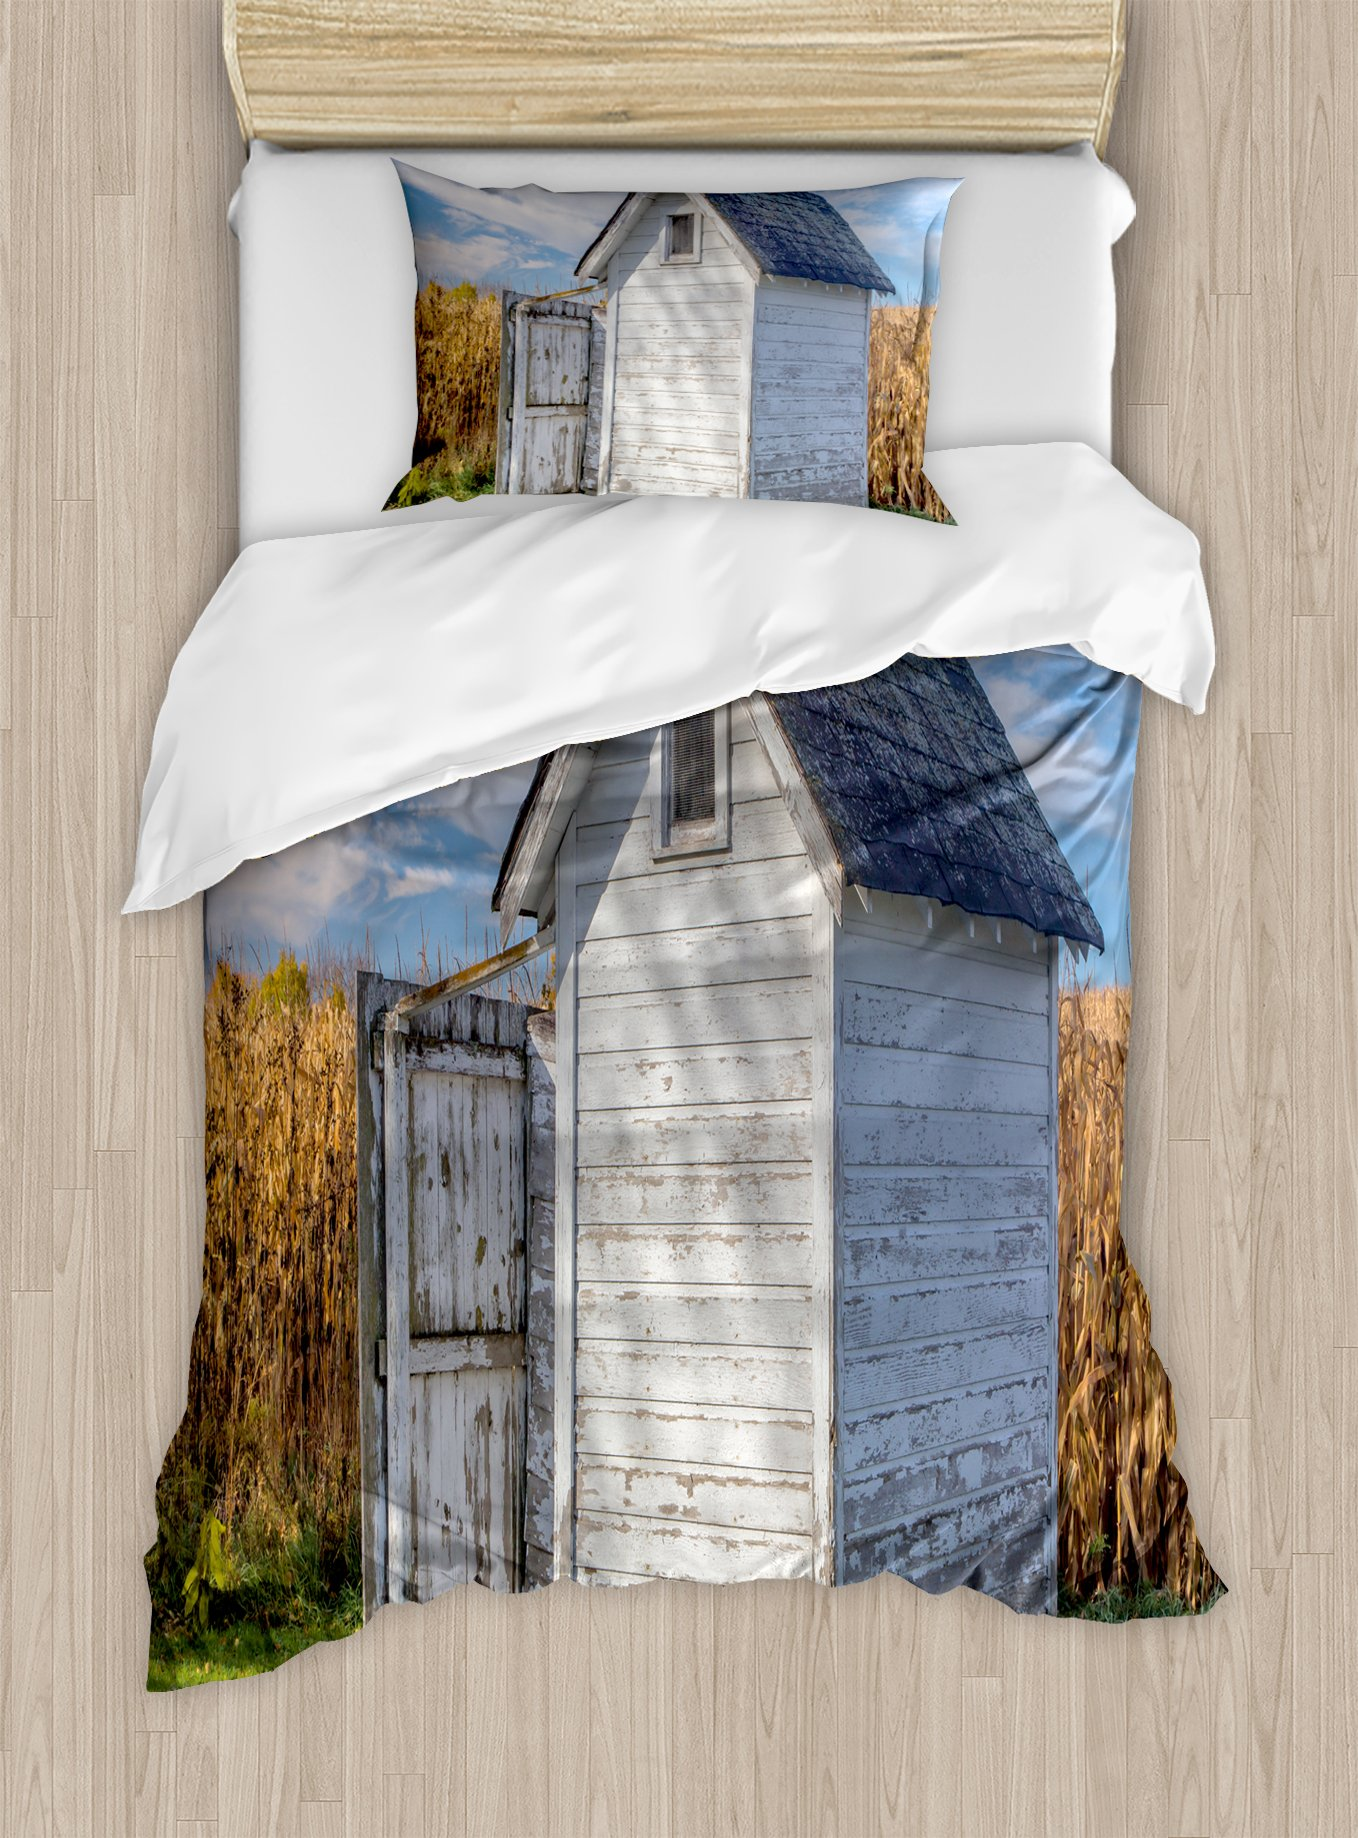 Ambesonne Outhouse Duvet Cover Set Twin Size, Country Farm Life Cottage with Wheat and Grass Under Sky Image, Decorative 2 Piece Bedding Set with 1 Pillow Sham, Marigold Green Blue and White